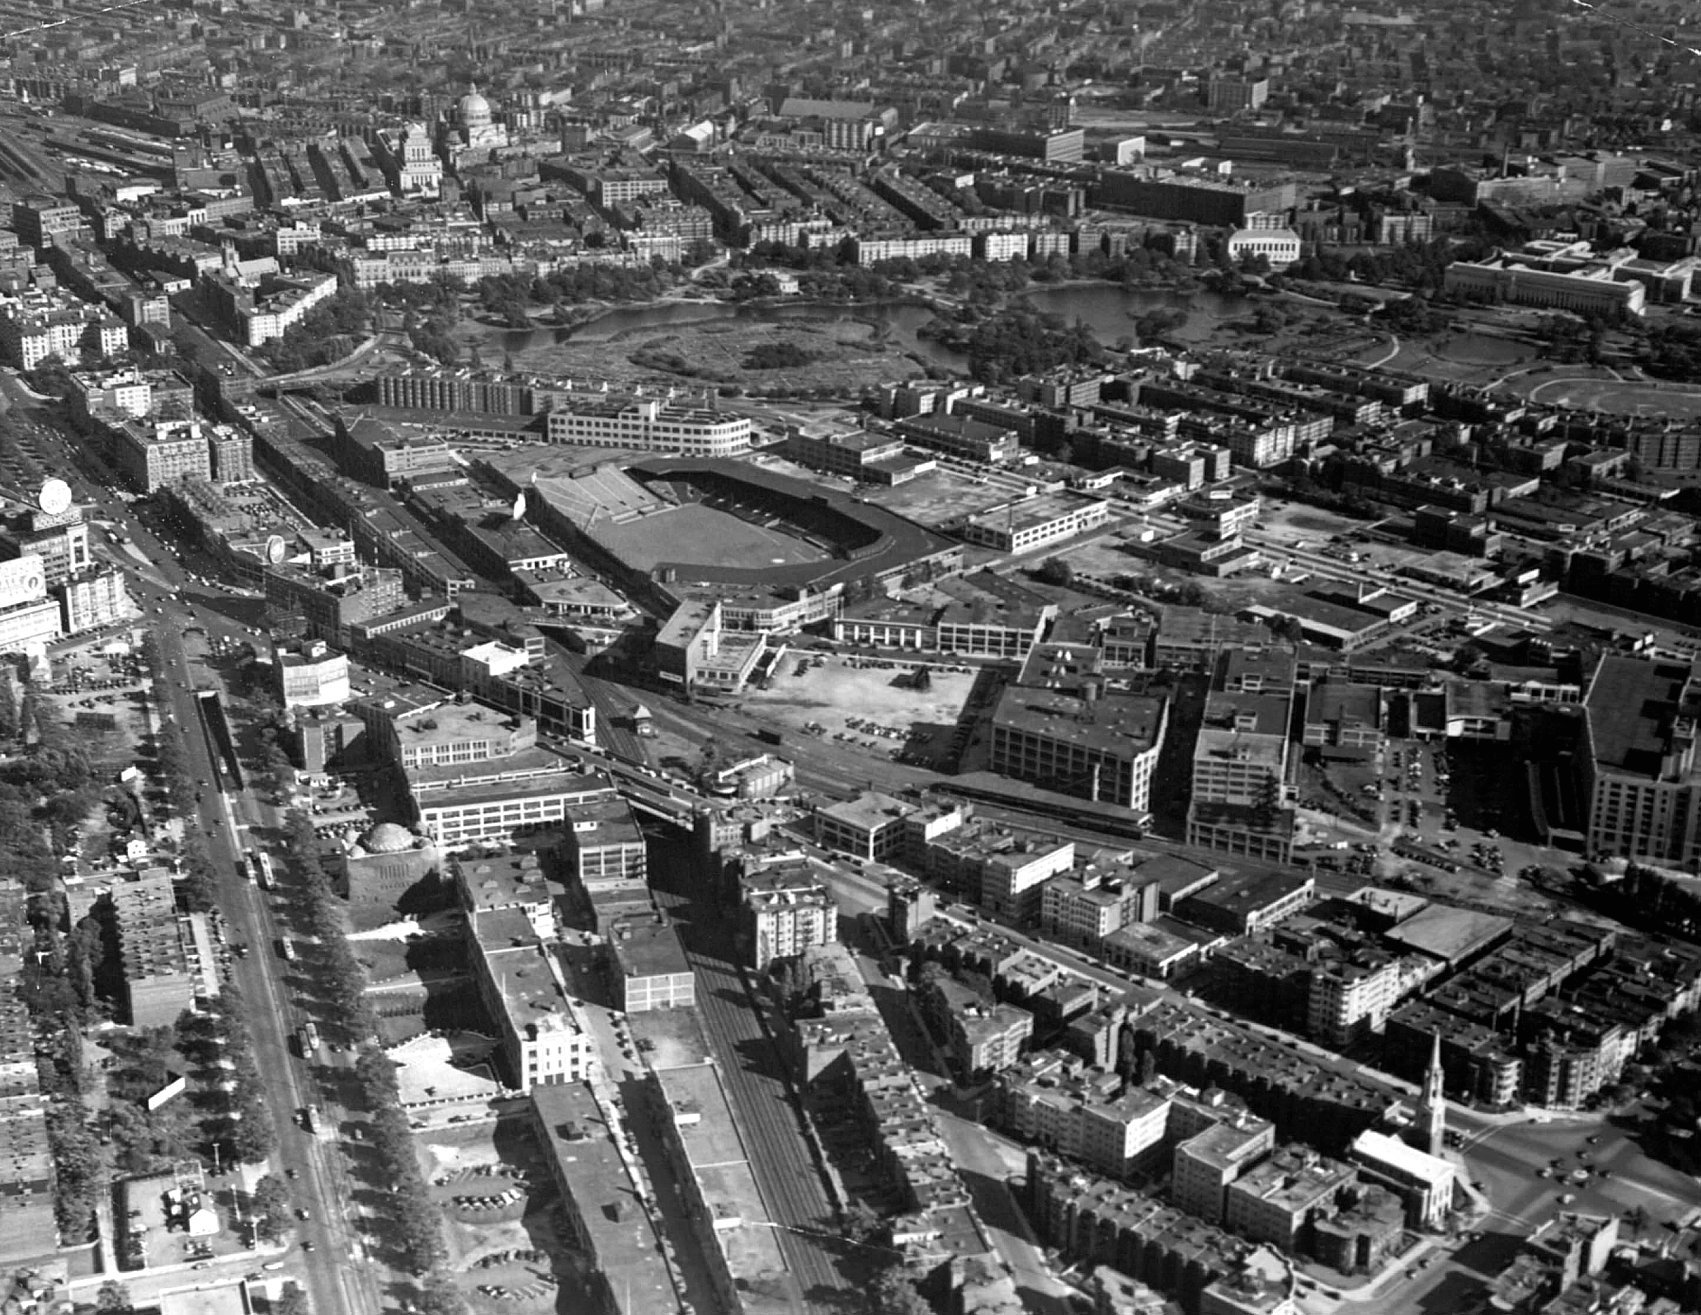 Fenway Park. Boston, 1945 - Aerial view of the Red Sox ballpark (33-years-old at this point) snuggled in the Fenway-Kenmore section of Boston. Take note of no light stanchions, that would come two years later in 1947 when Red Sox would finally play a night game at home https://t.co/iPodaAhKzB